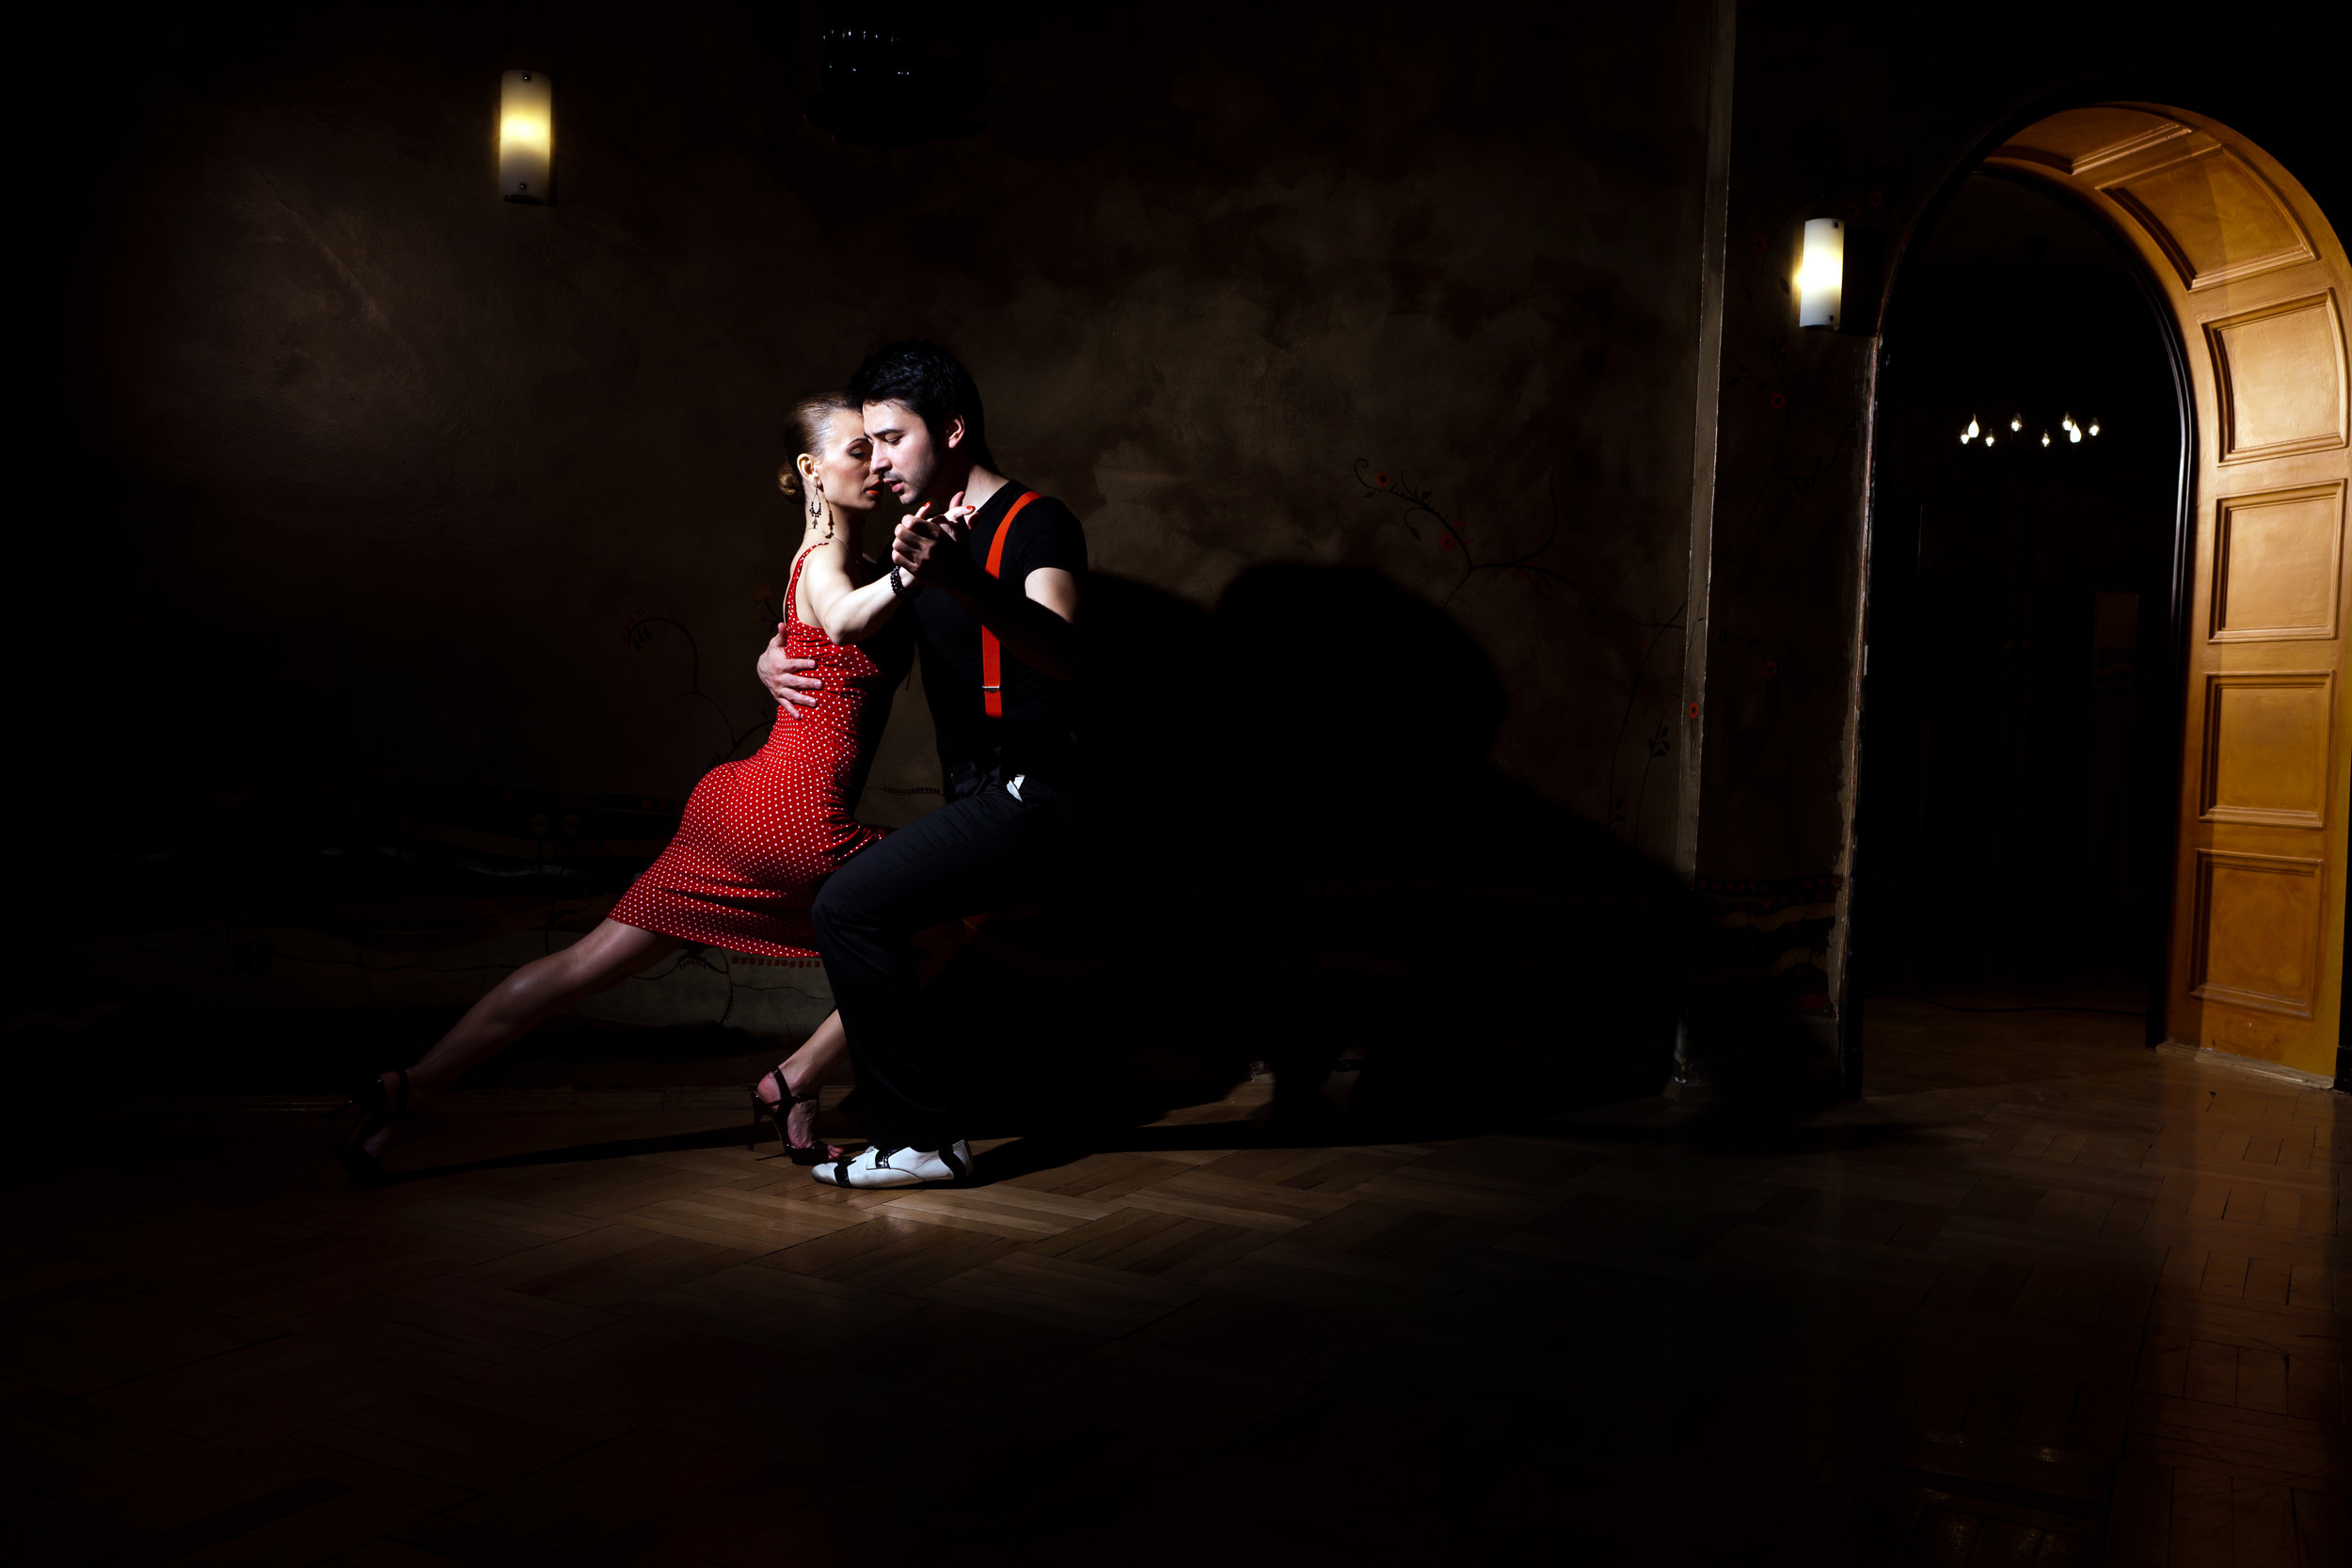 Tango - The Dance of Seduction, Buenos Aires, Argentina